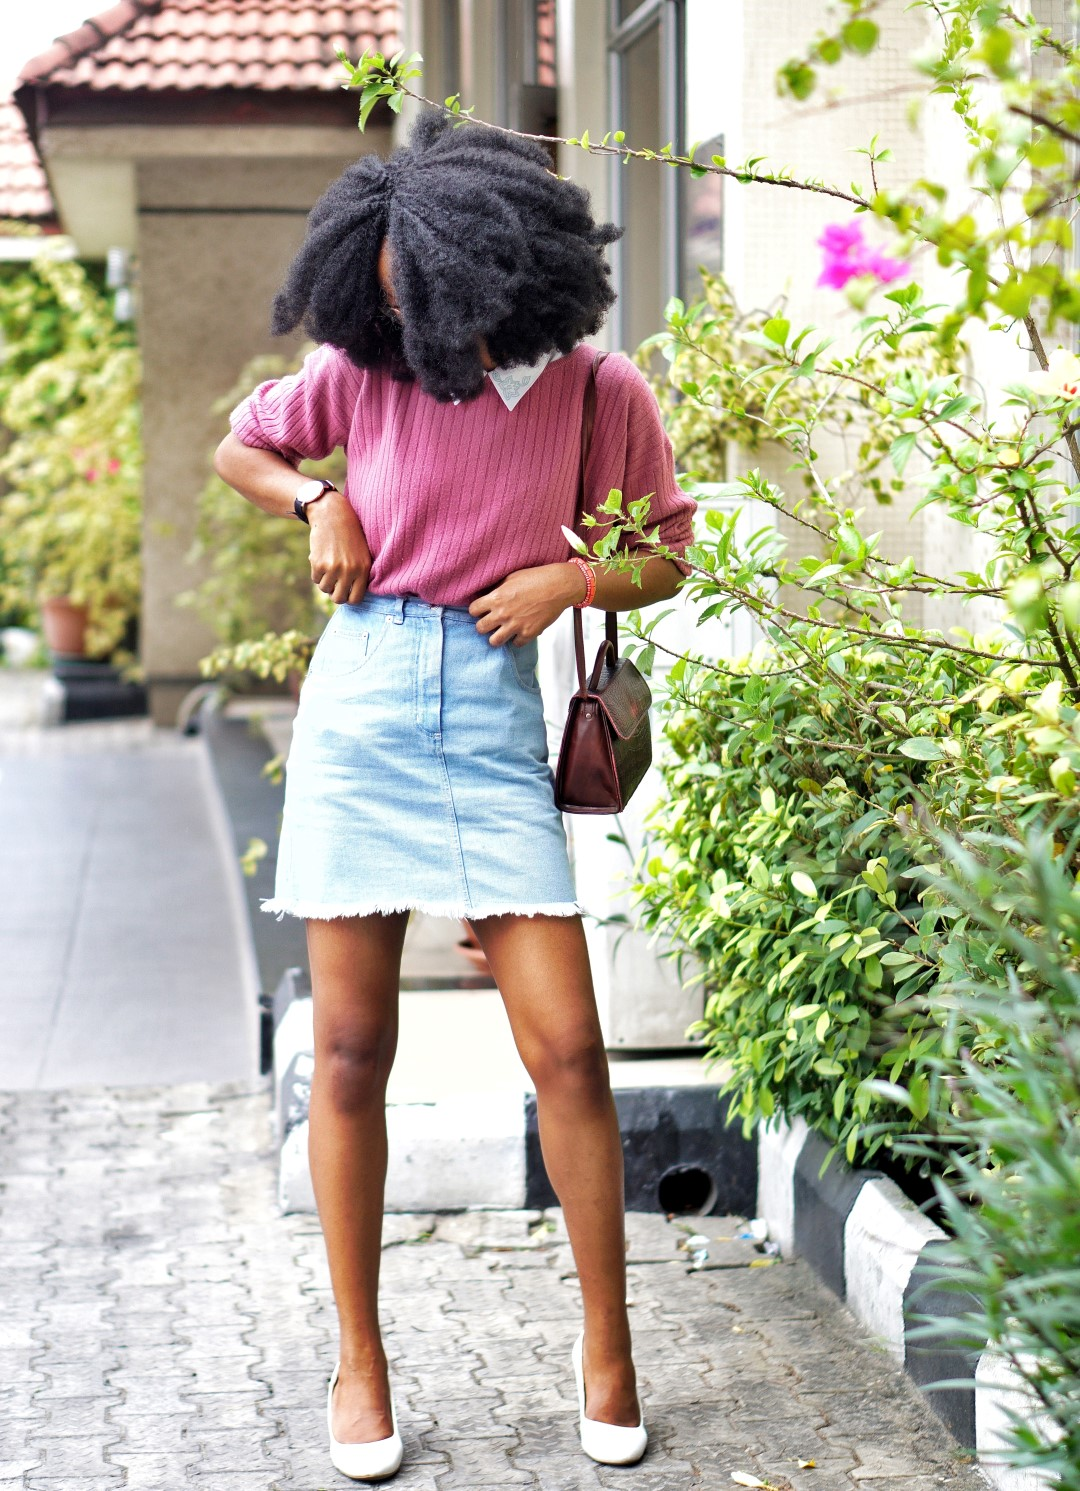 nigerian fashion blogger Cassie daves wearing a denim mini skirt, sweat shirt and white court shoes